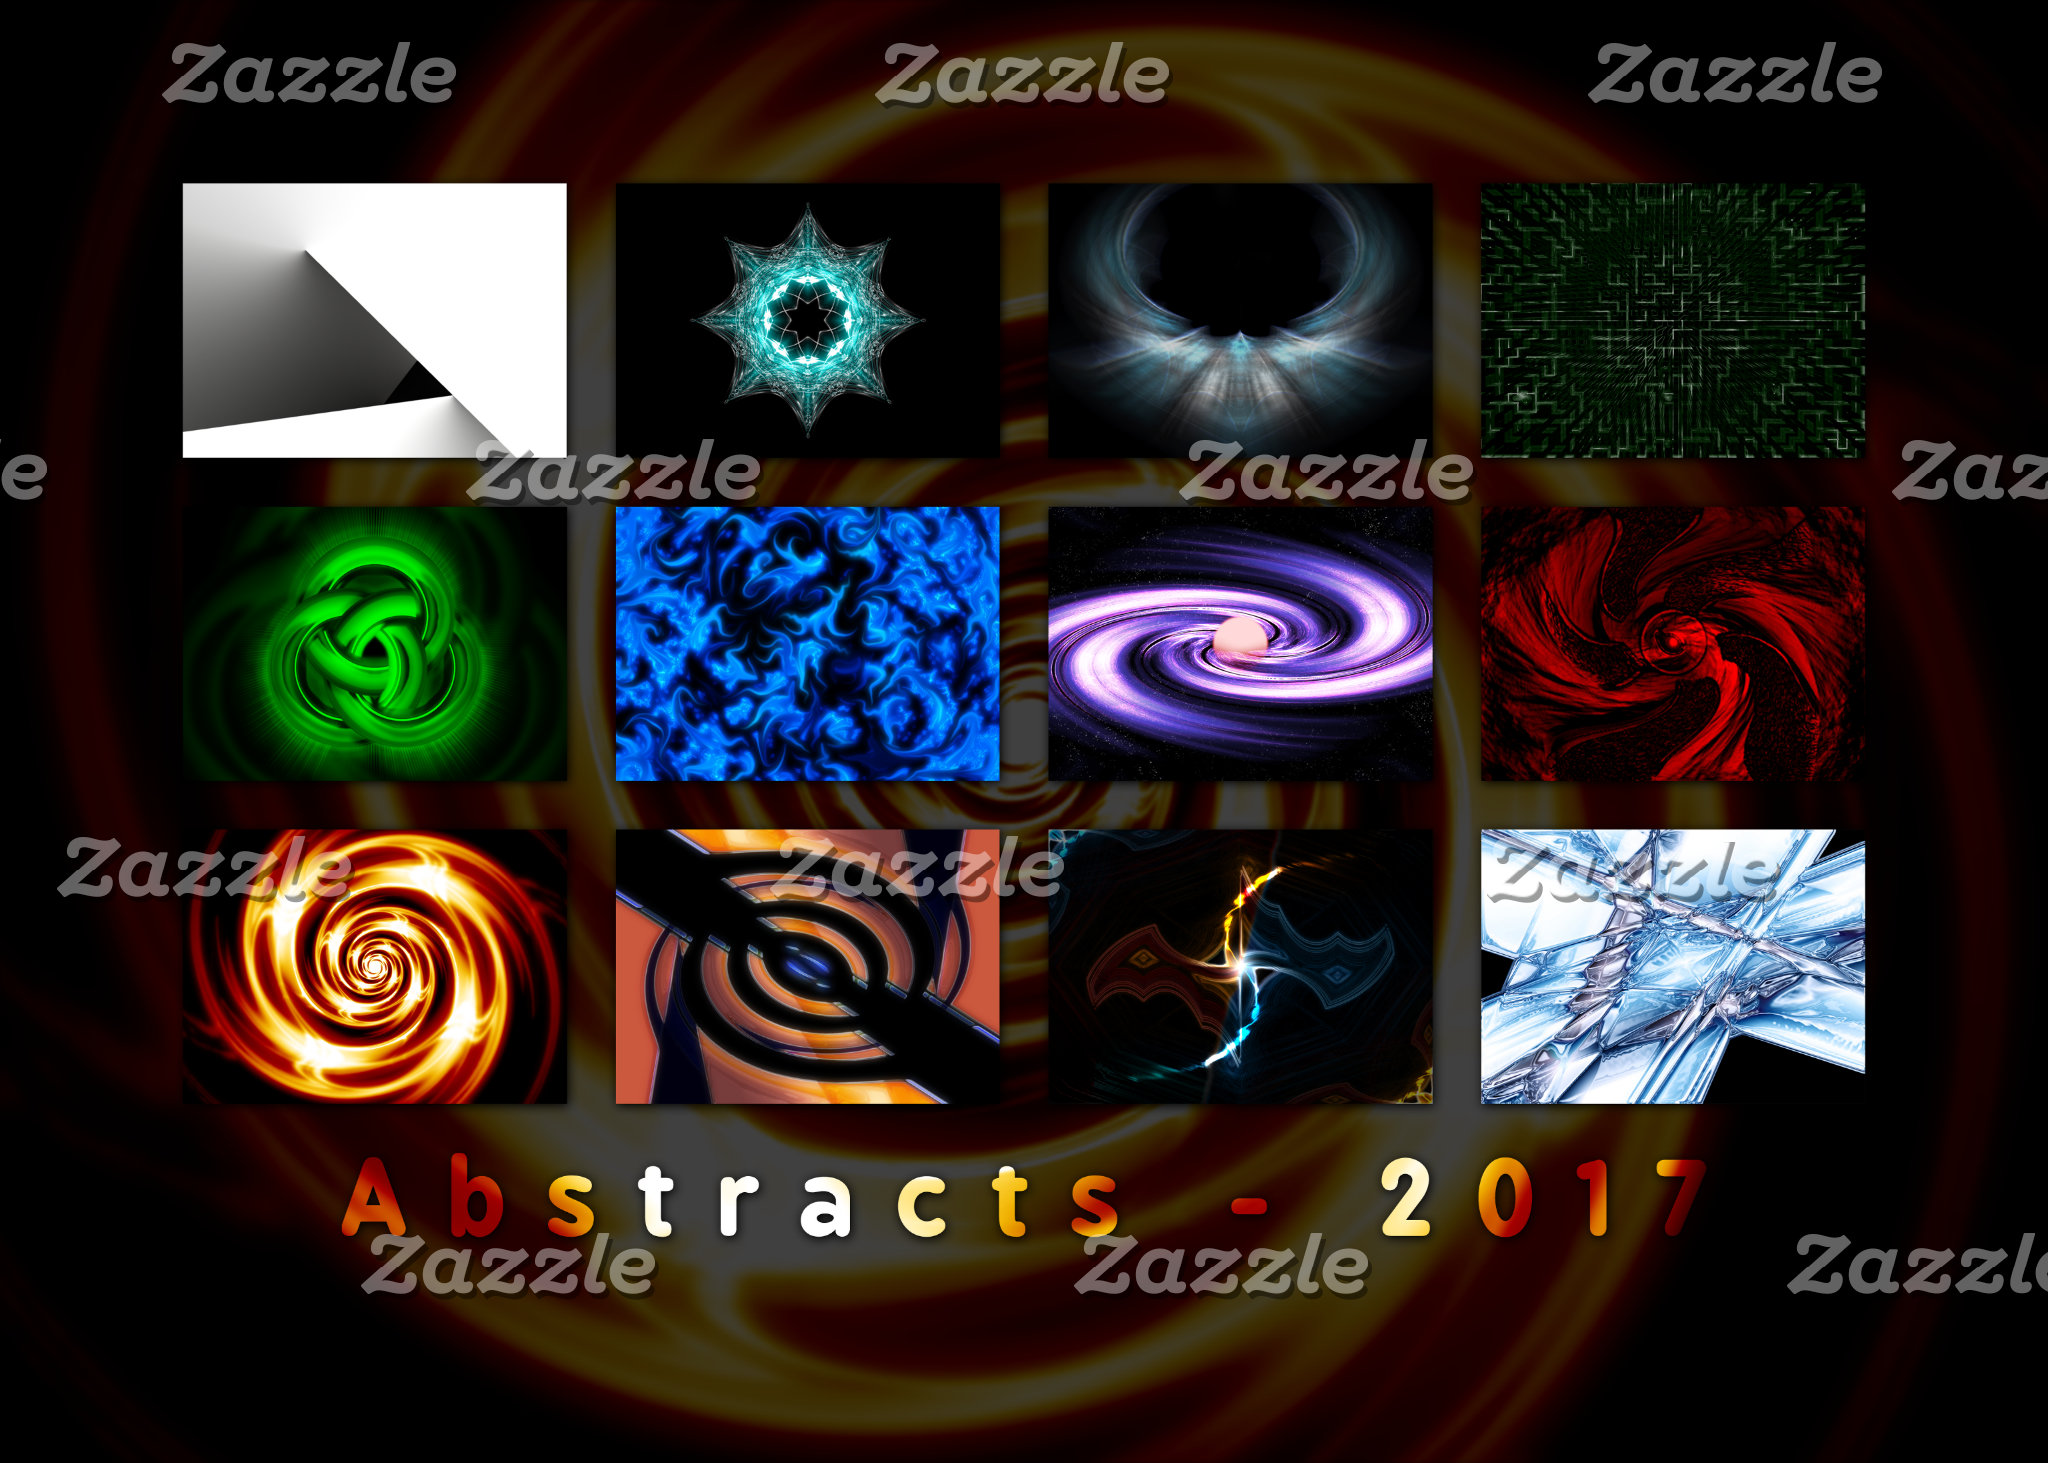 Calendar (Abstracts 2017)